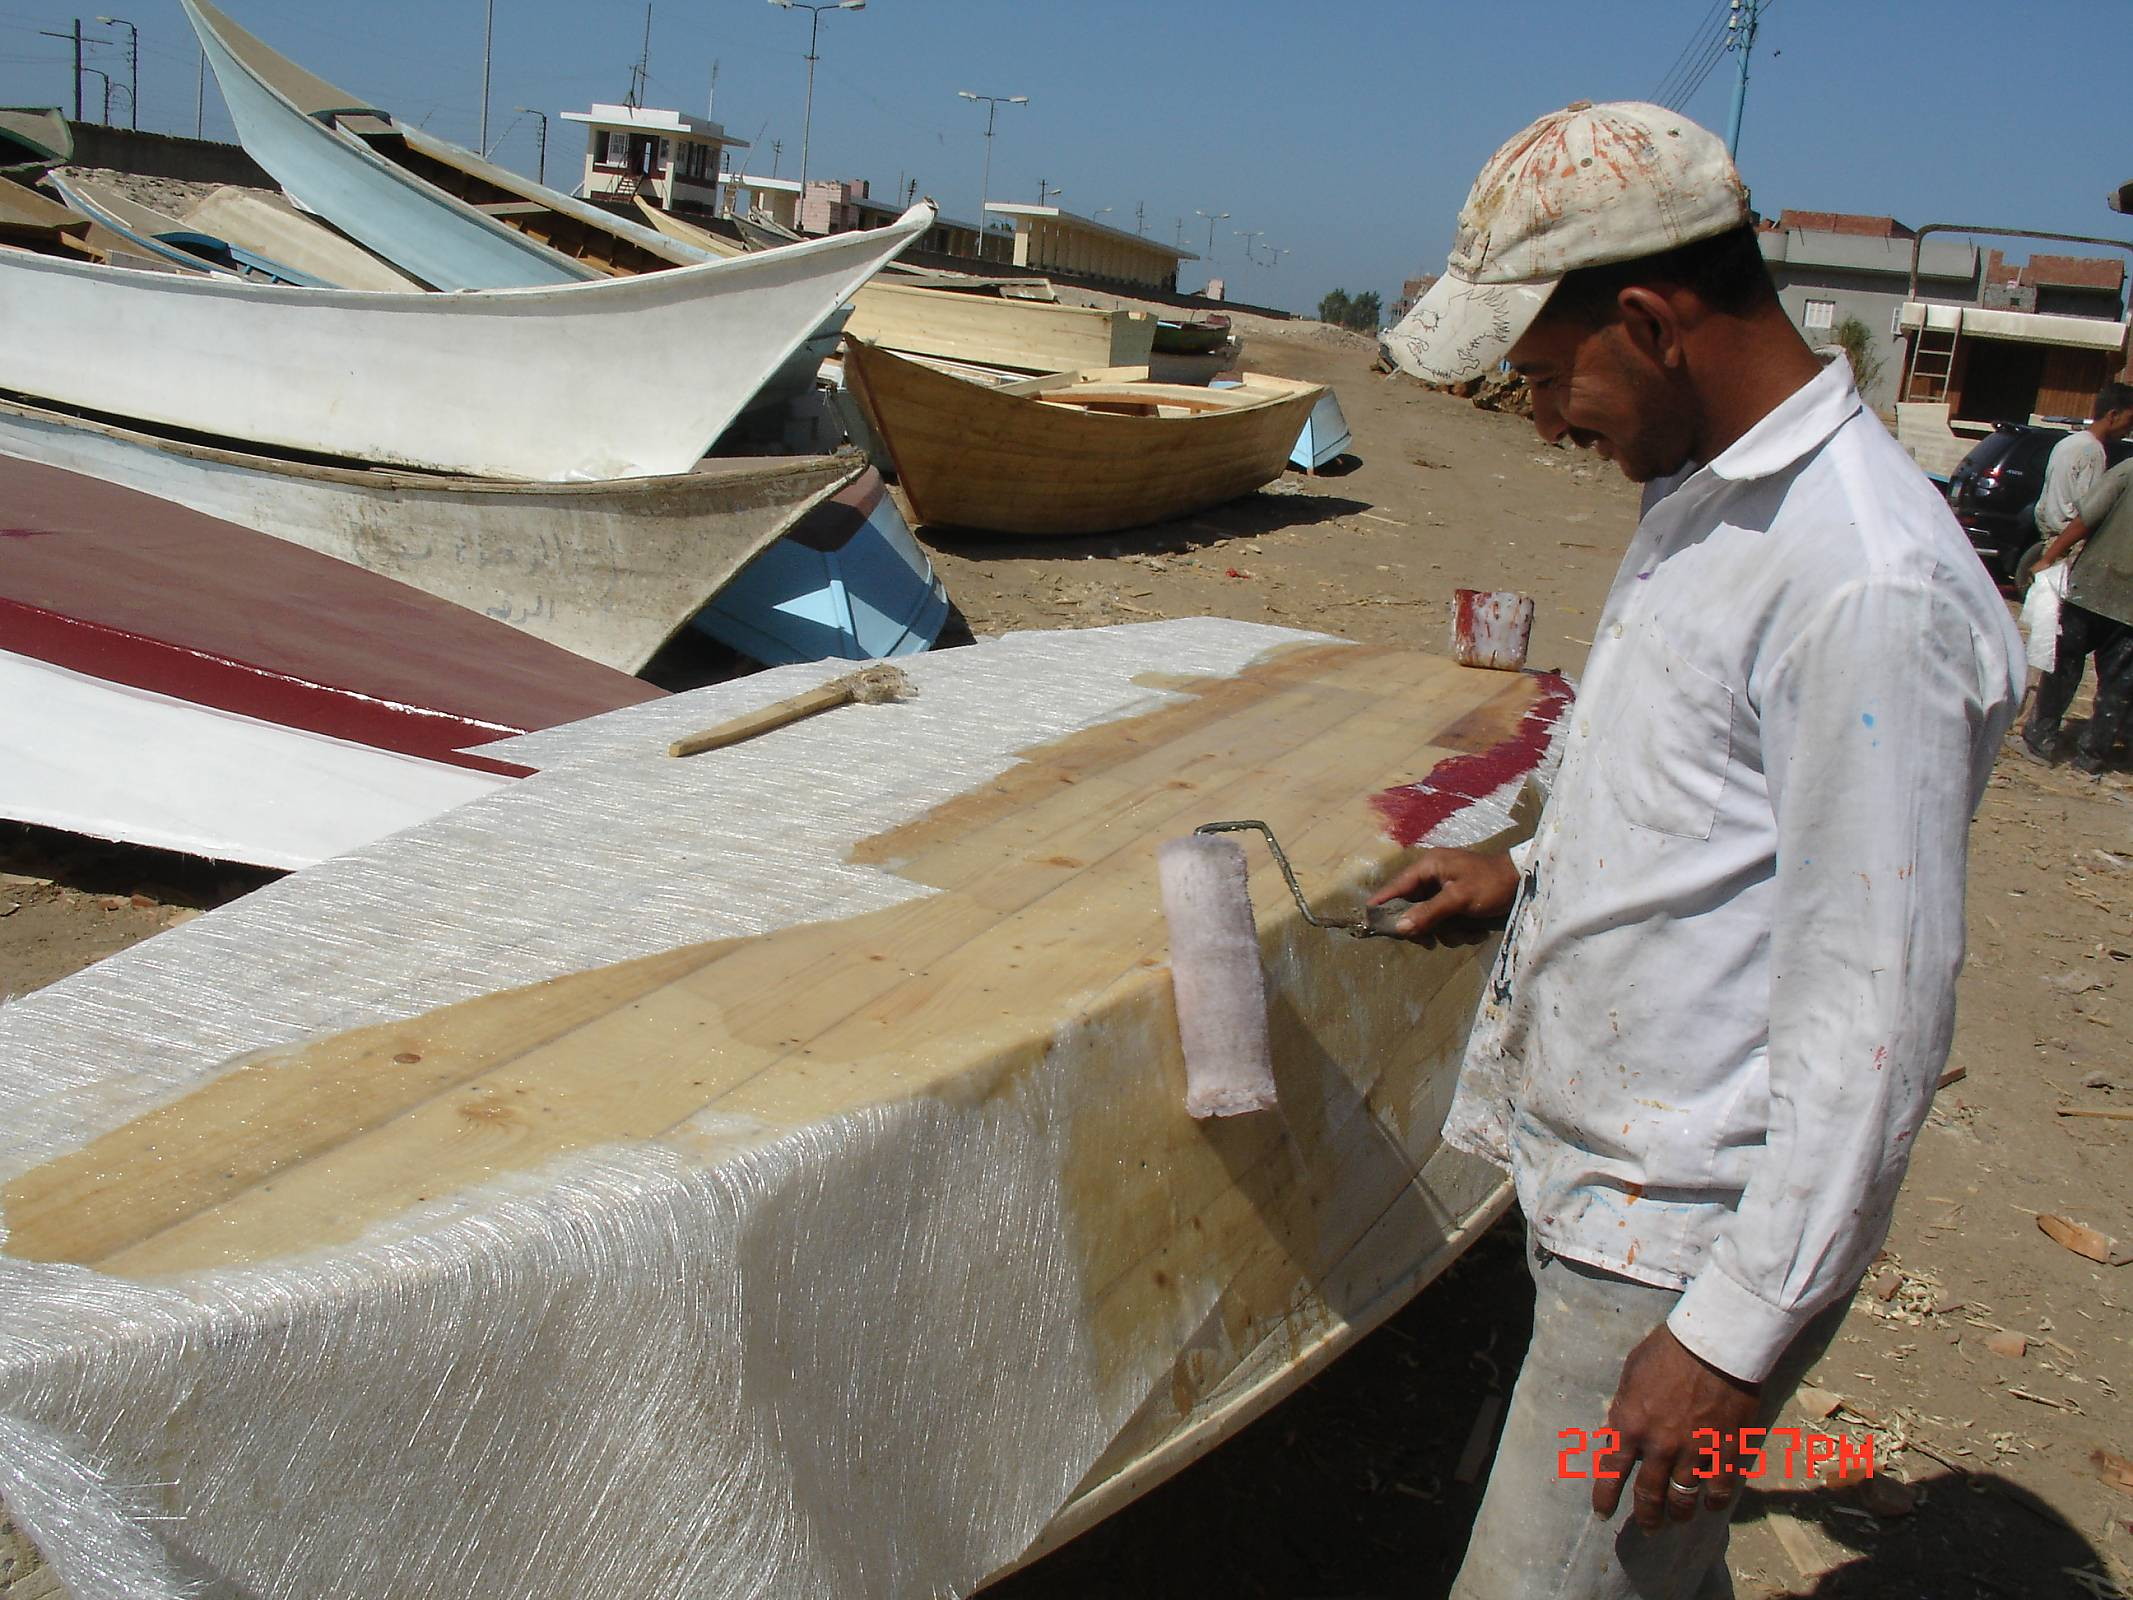 polyester resin stitch and glue | Boat Design Net